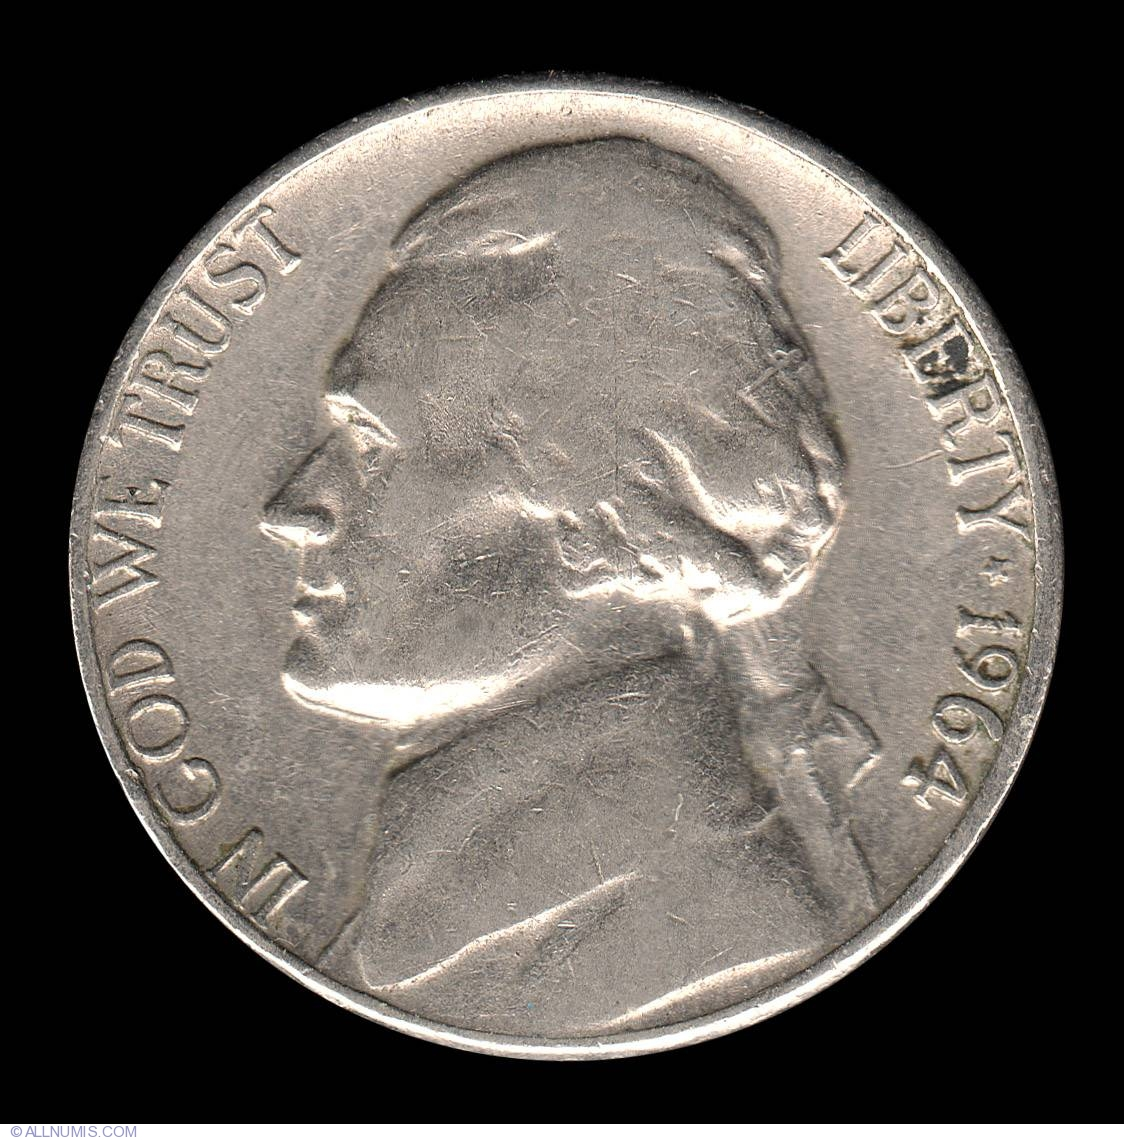 Jefferson Nickel 1964 D